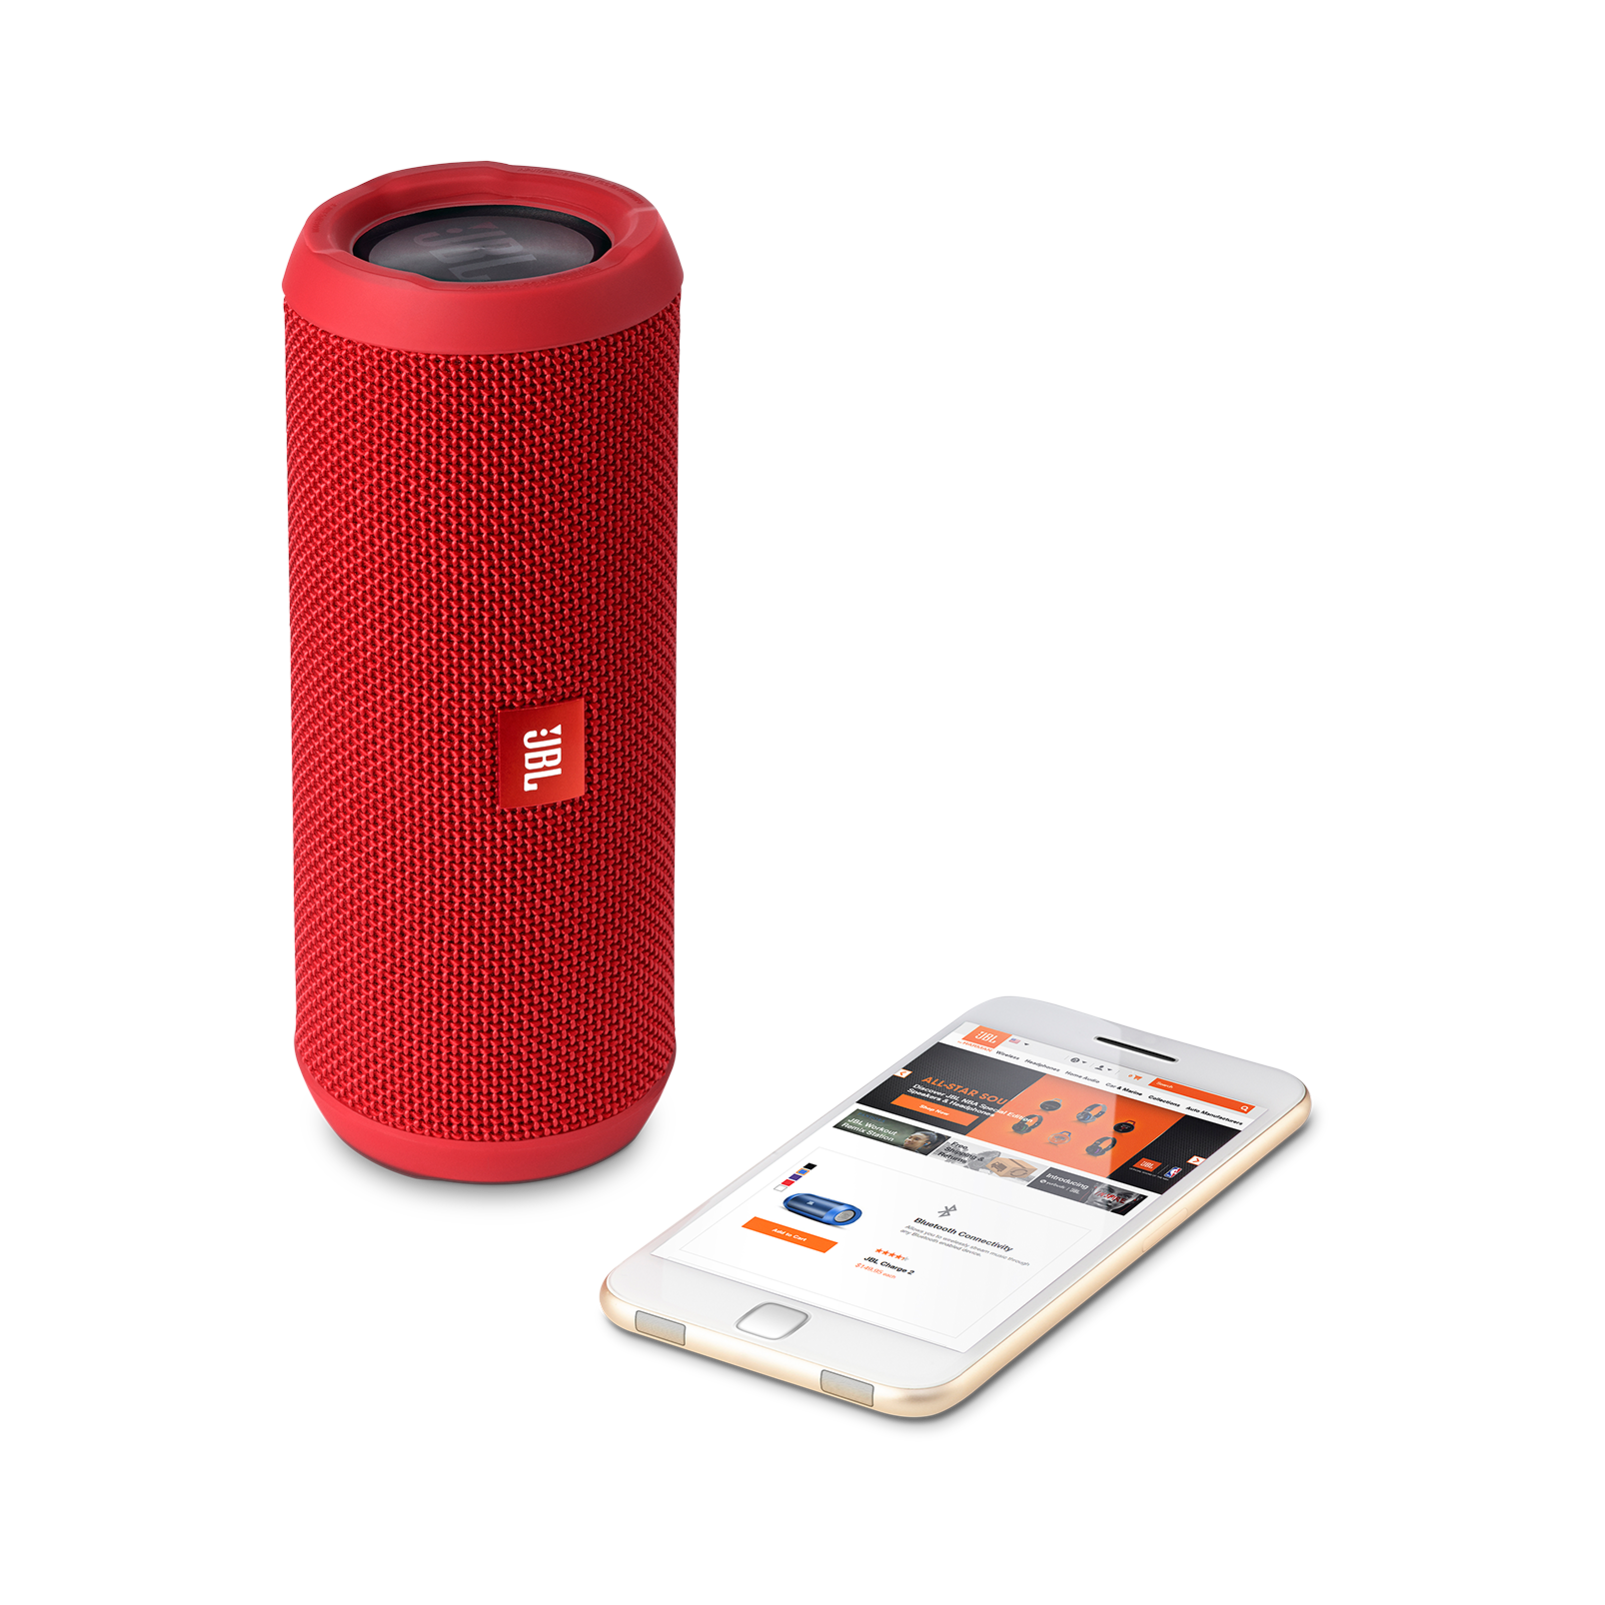 JBL Flip 3 - Red - Splashproof portable Bluetooth speaker with powerful sound and speakerphone technology - Detailshot 1